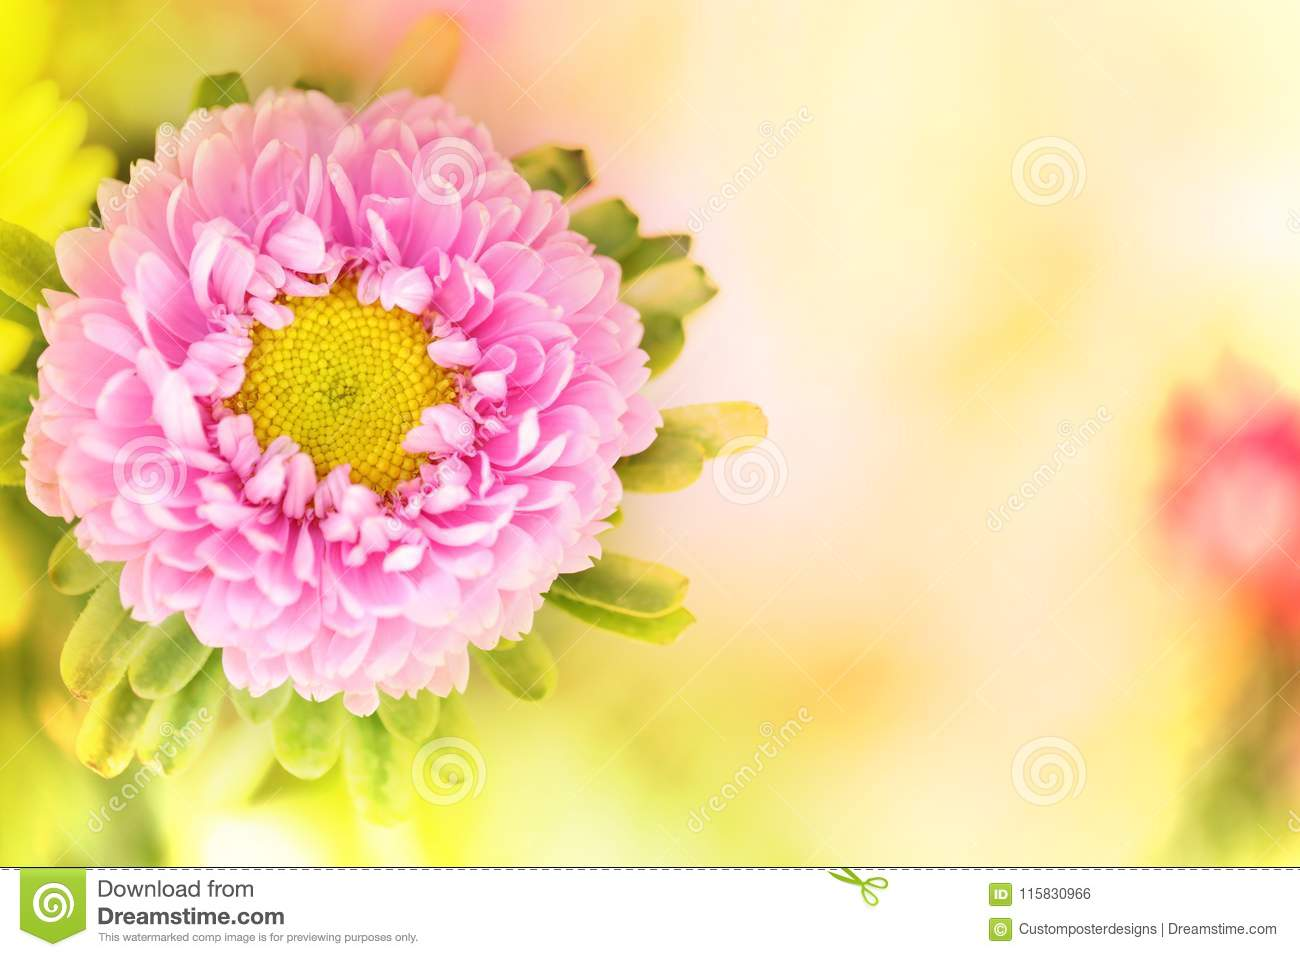 A horizontal presentation of a pink flower.